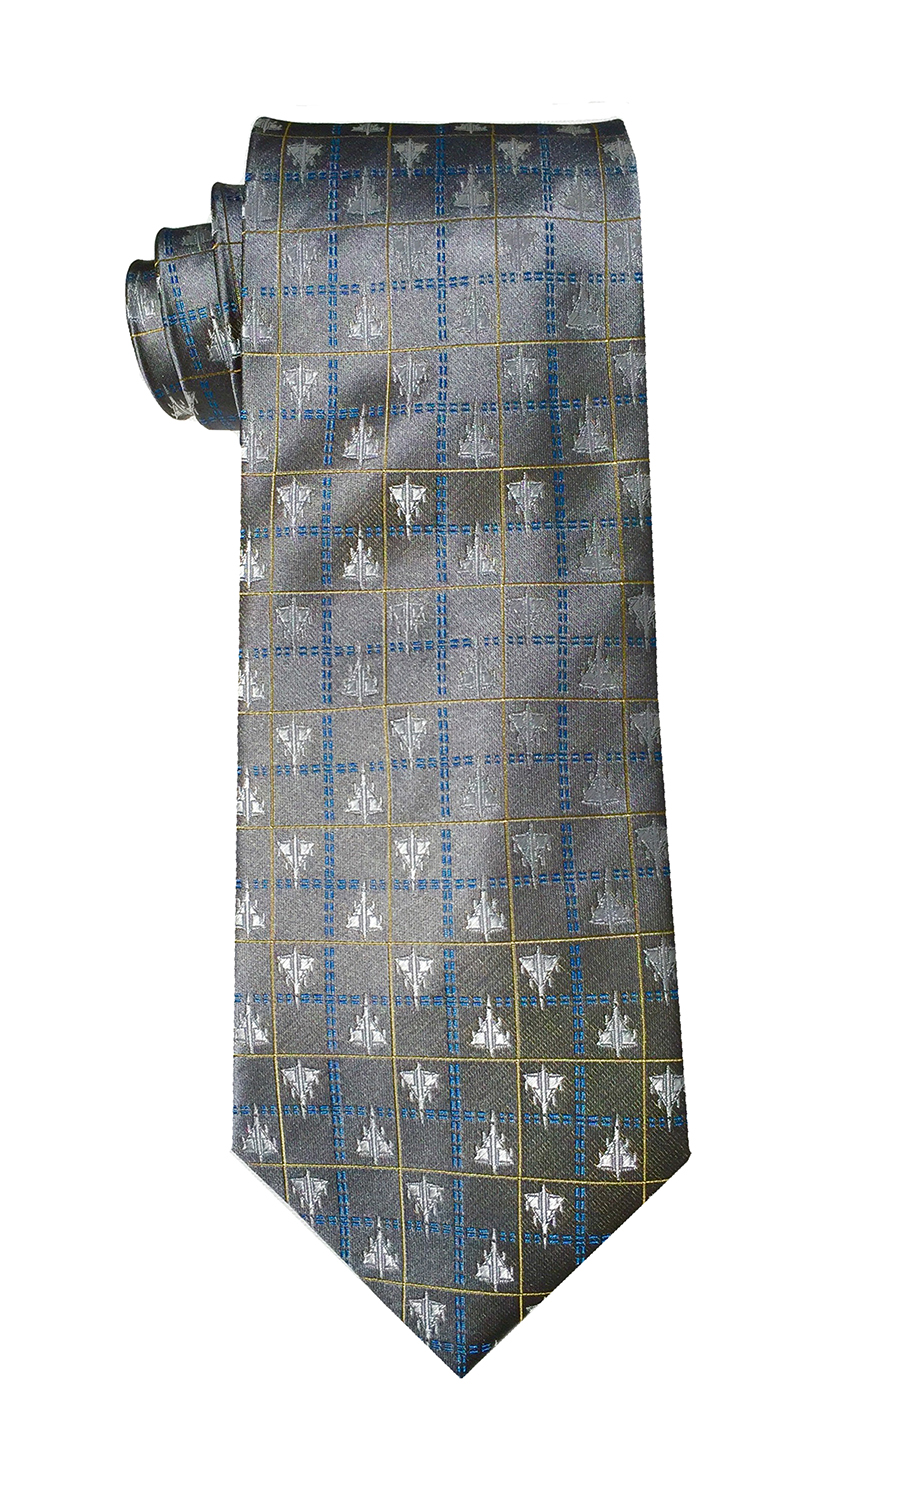 B-58 Hustler jet tie in grey